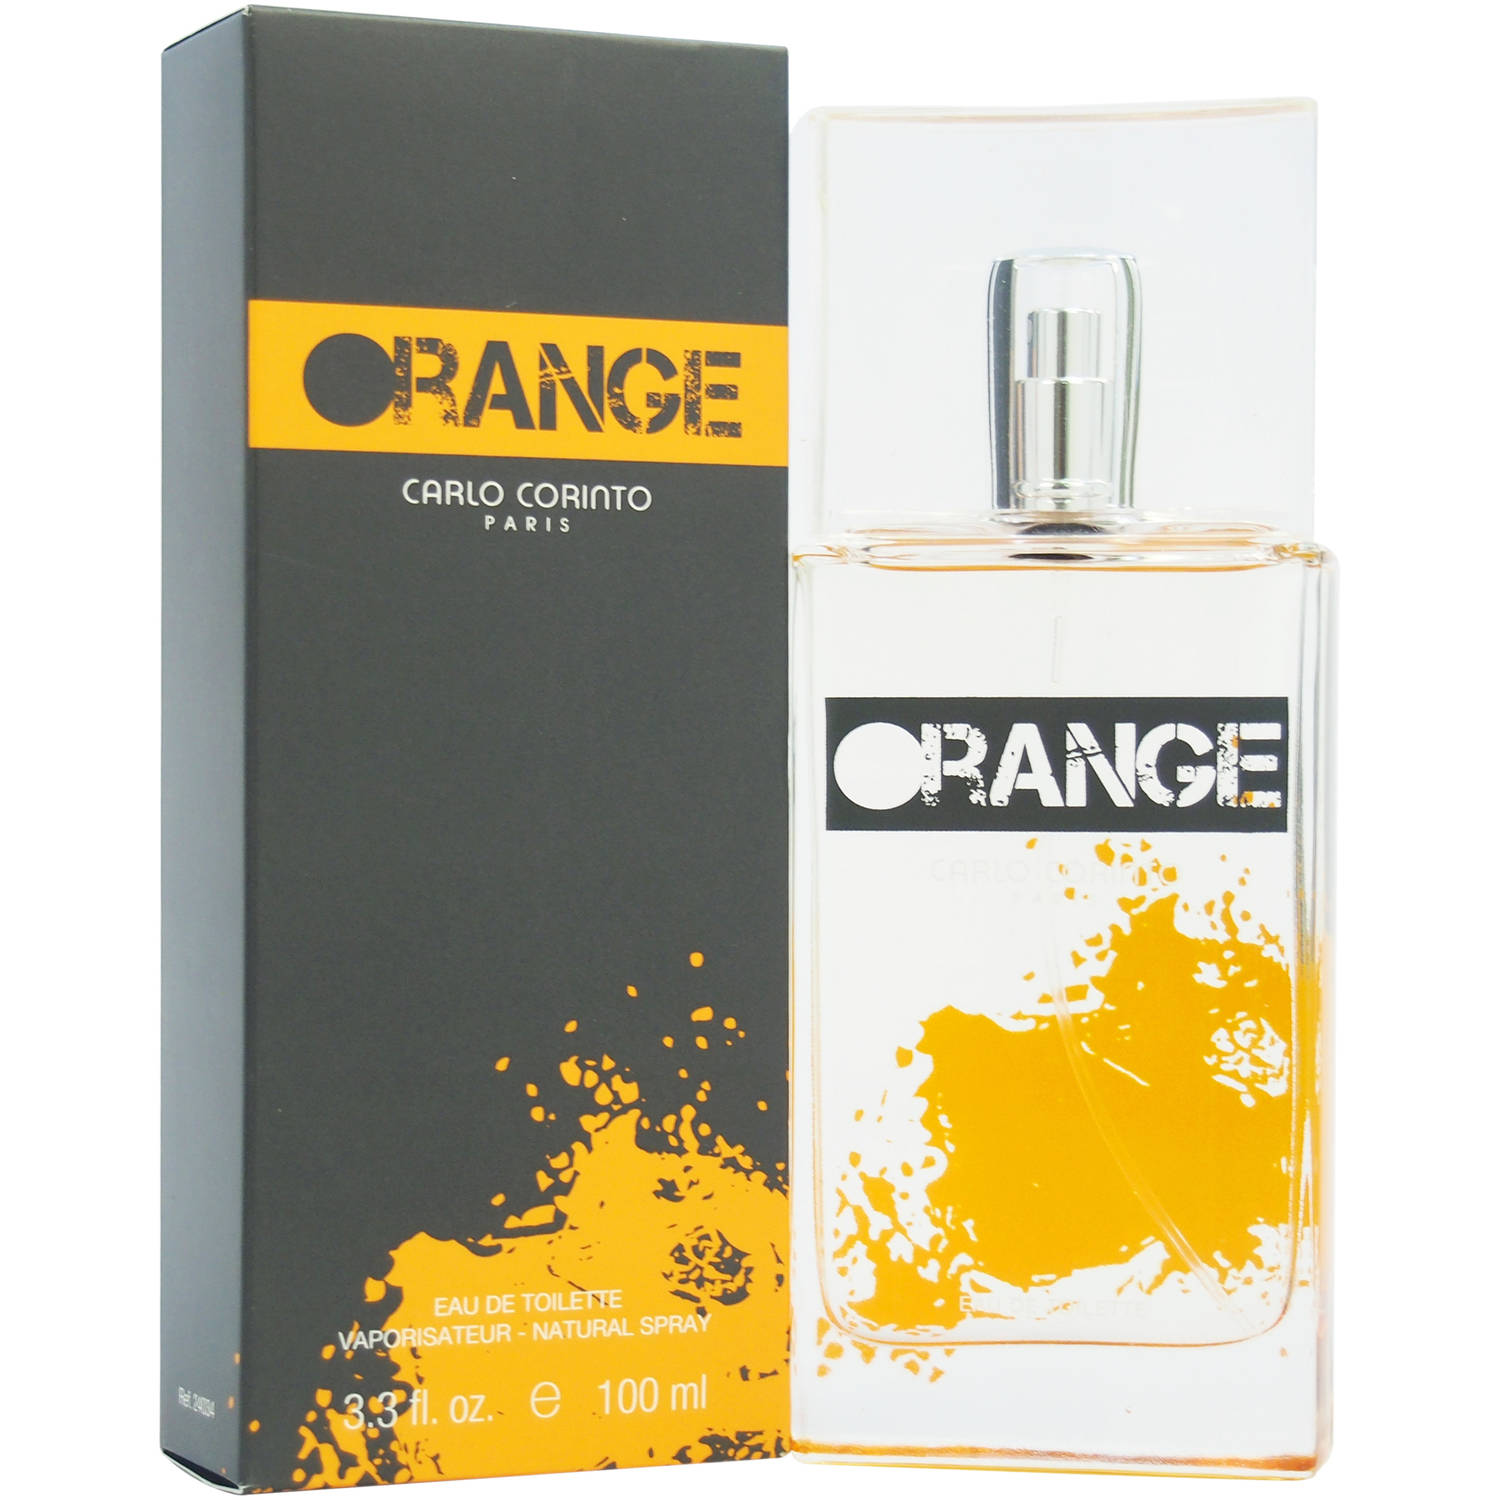 Carlo Corinto Carlo Corinto Orange EDT Spray, 3.3 fl oz